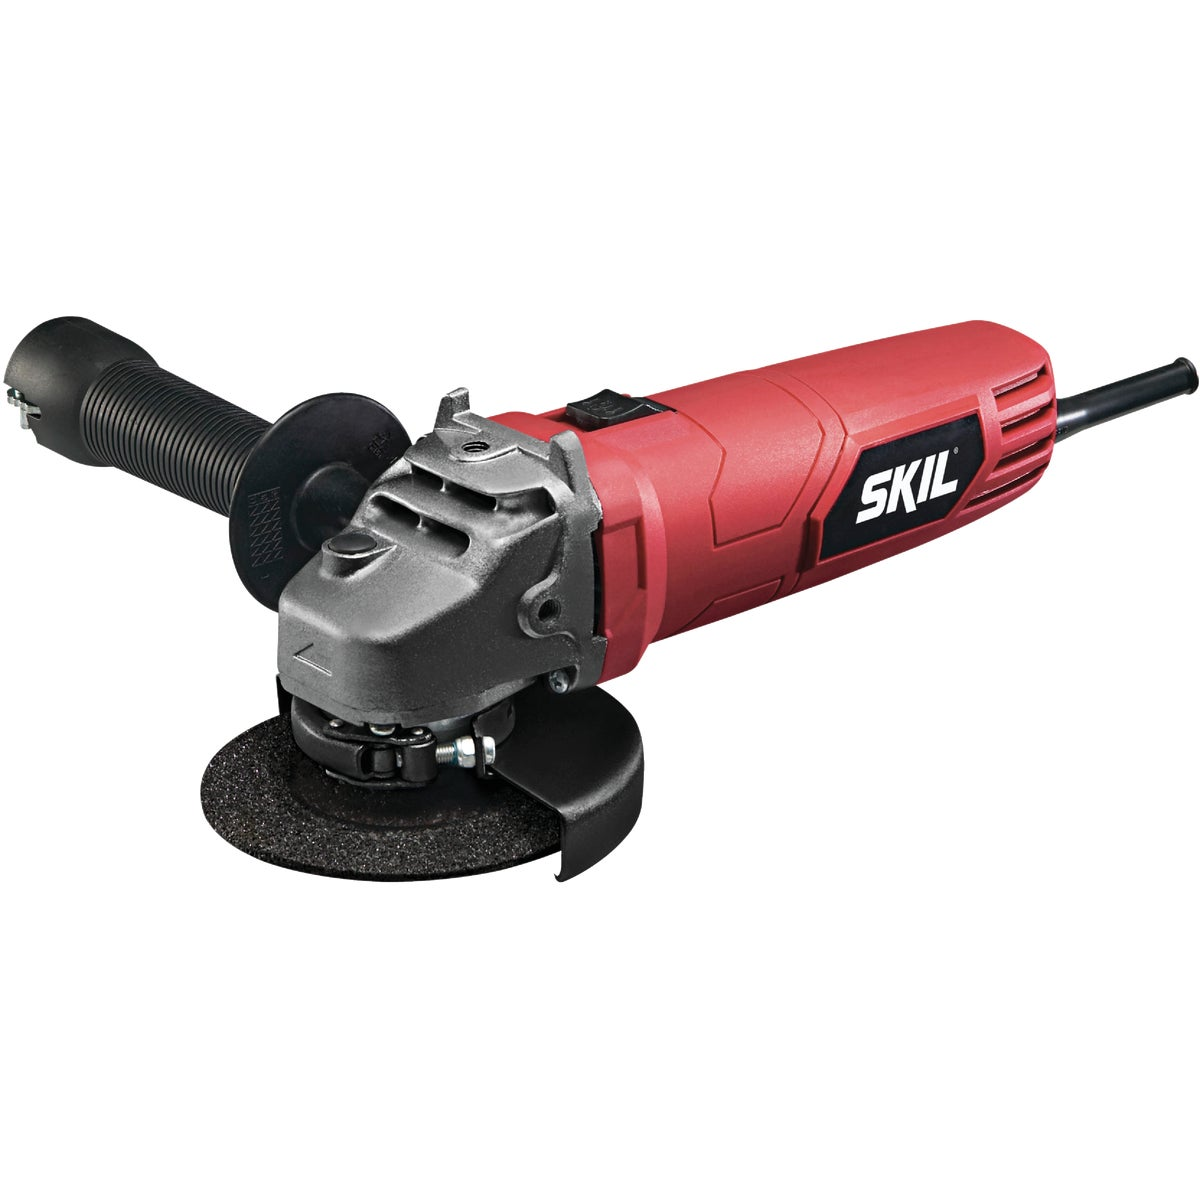 "6A 4-1/2"" ANGLE GRINDER"